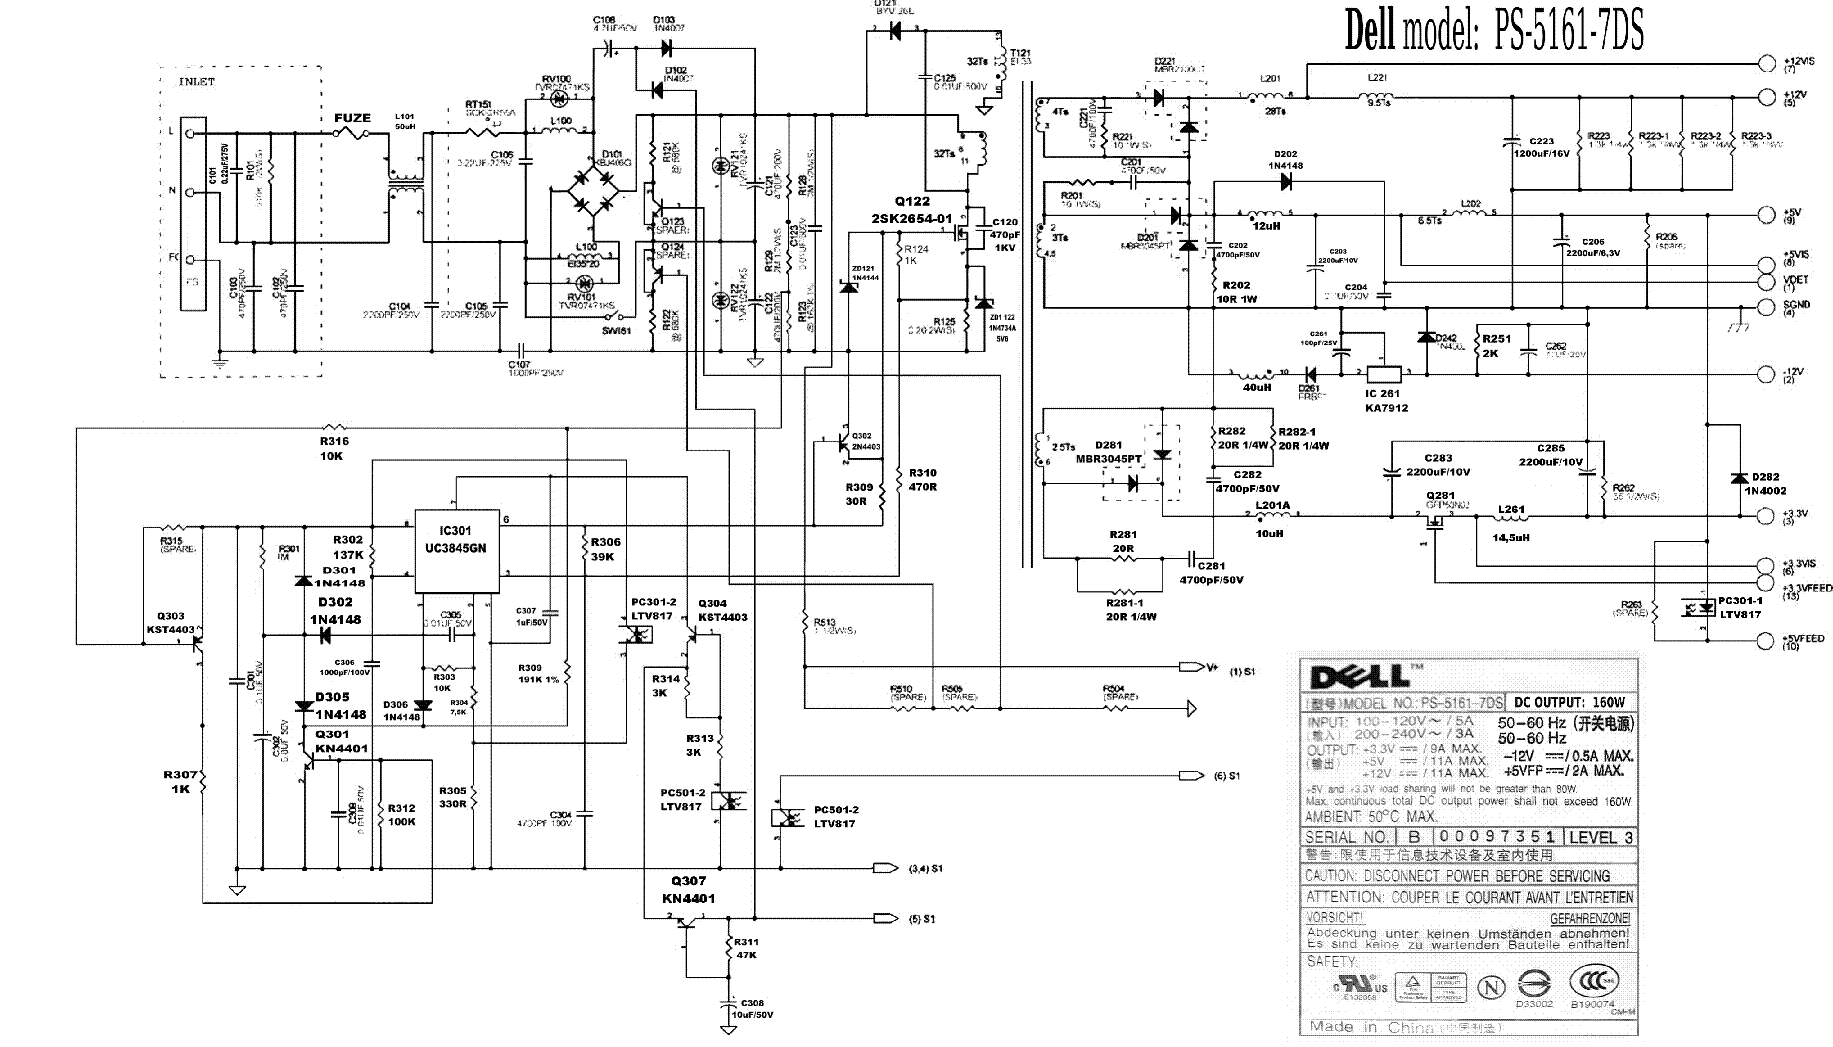 Power Schematic Wiring Library Circuits Pinterest Different Types Of And Dell Ps 5161 7ds Supply Service Manual 1st Page